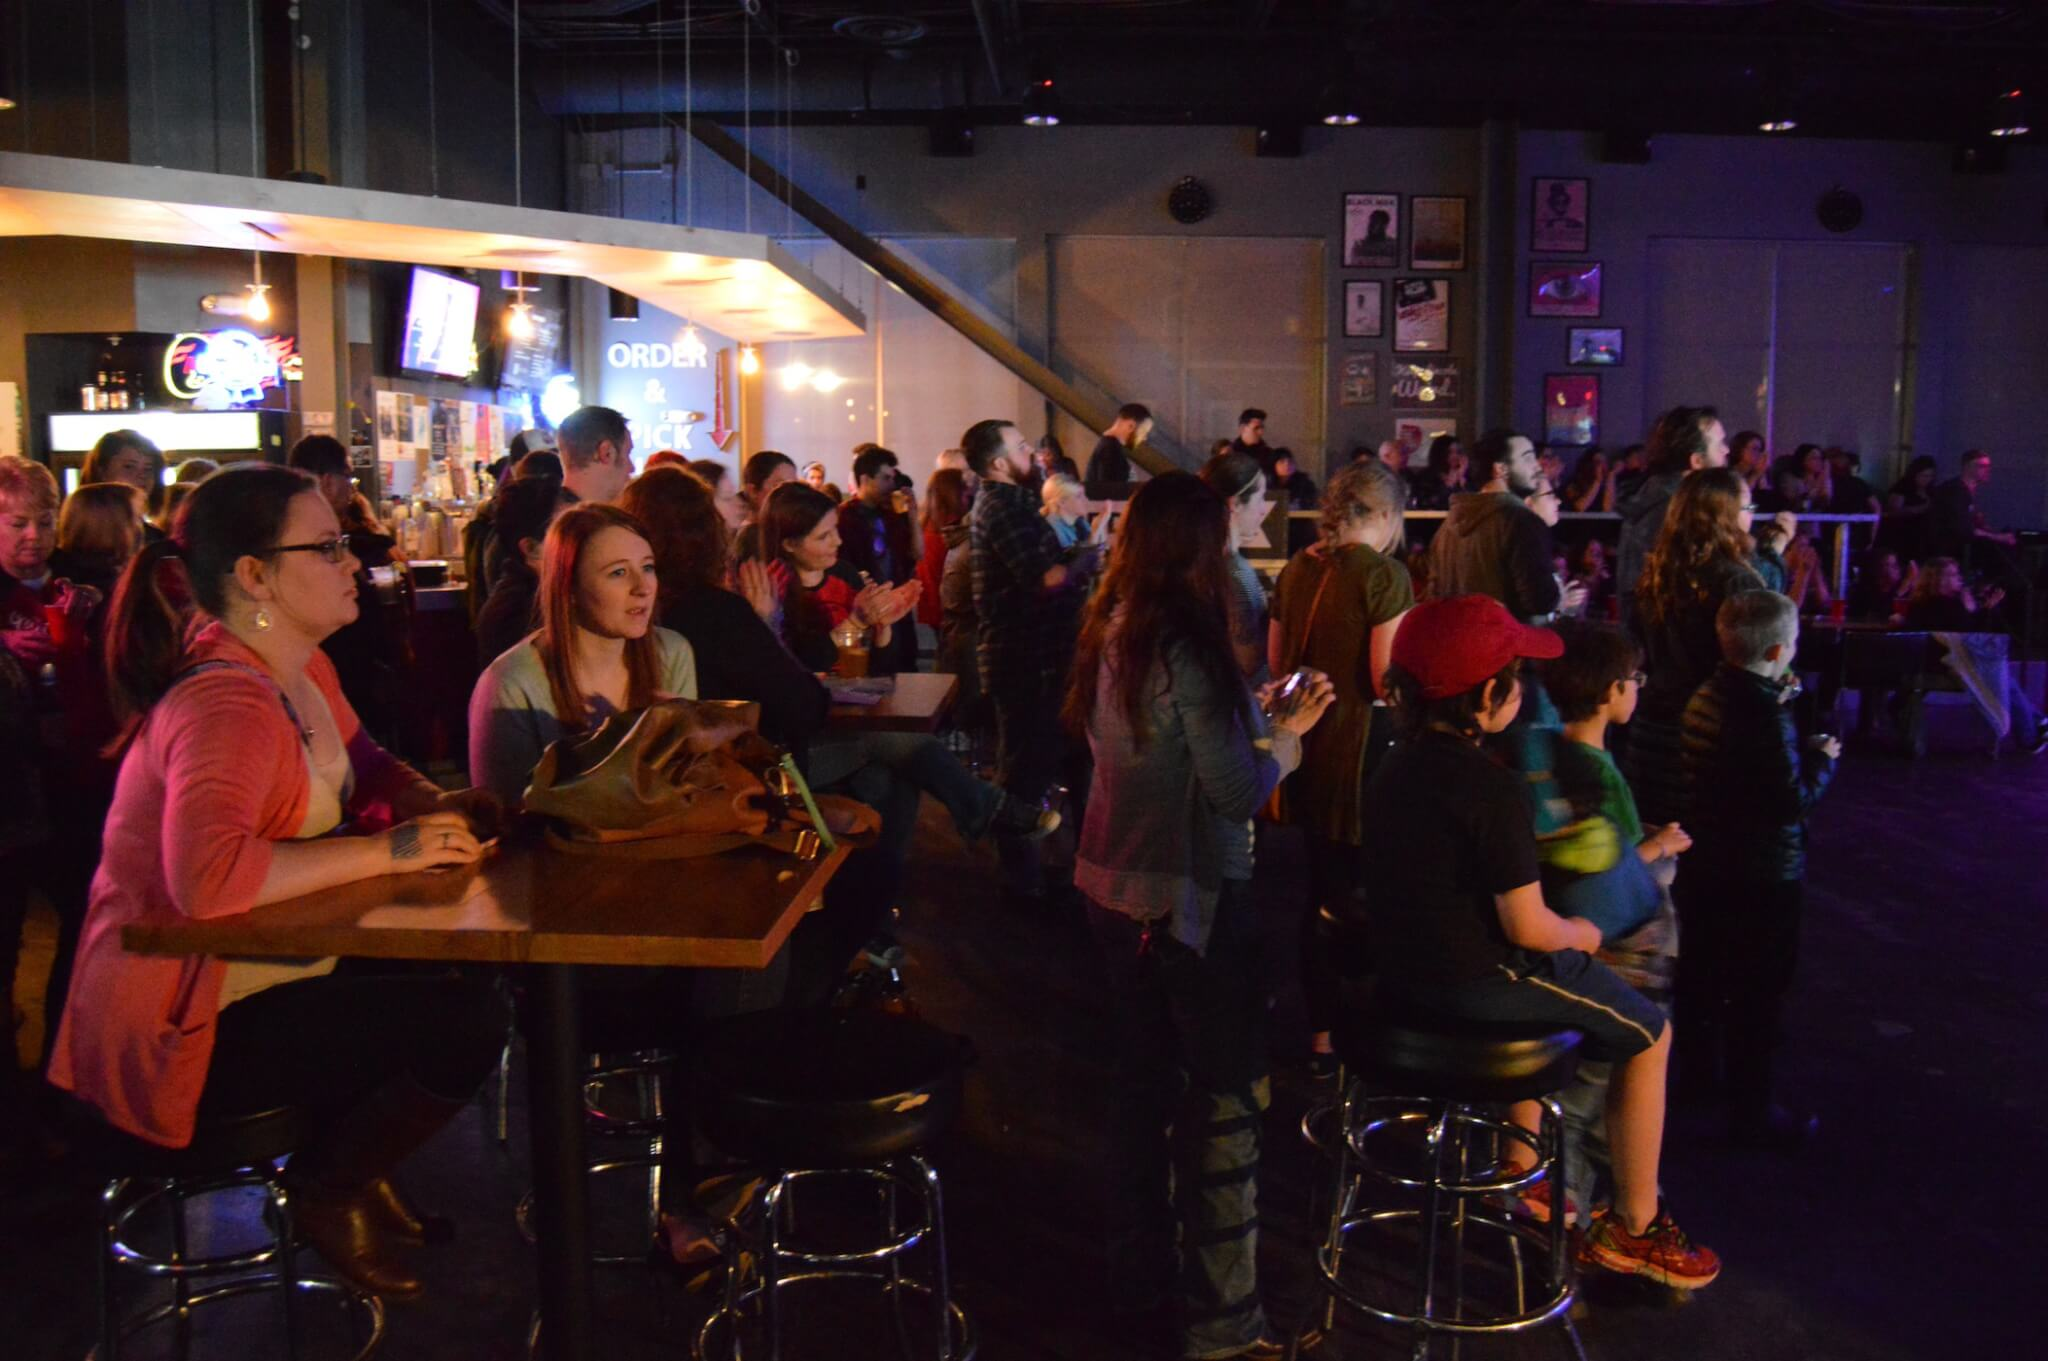 A Battle of the Bands for Bernie event in Lincoln, organized by the grassroots group